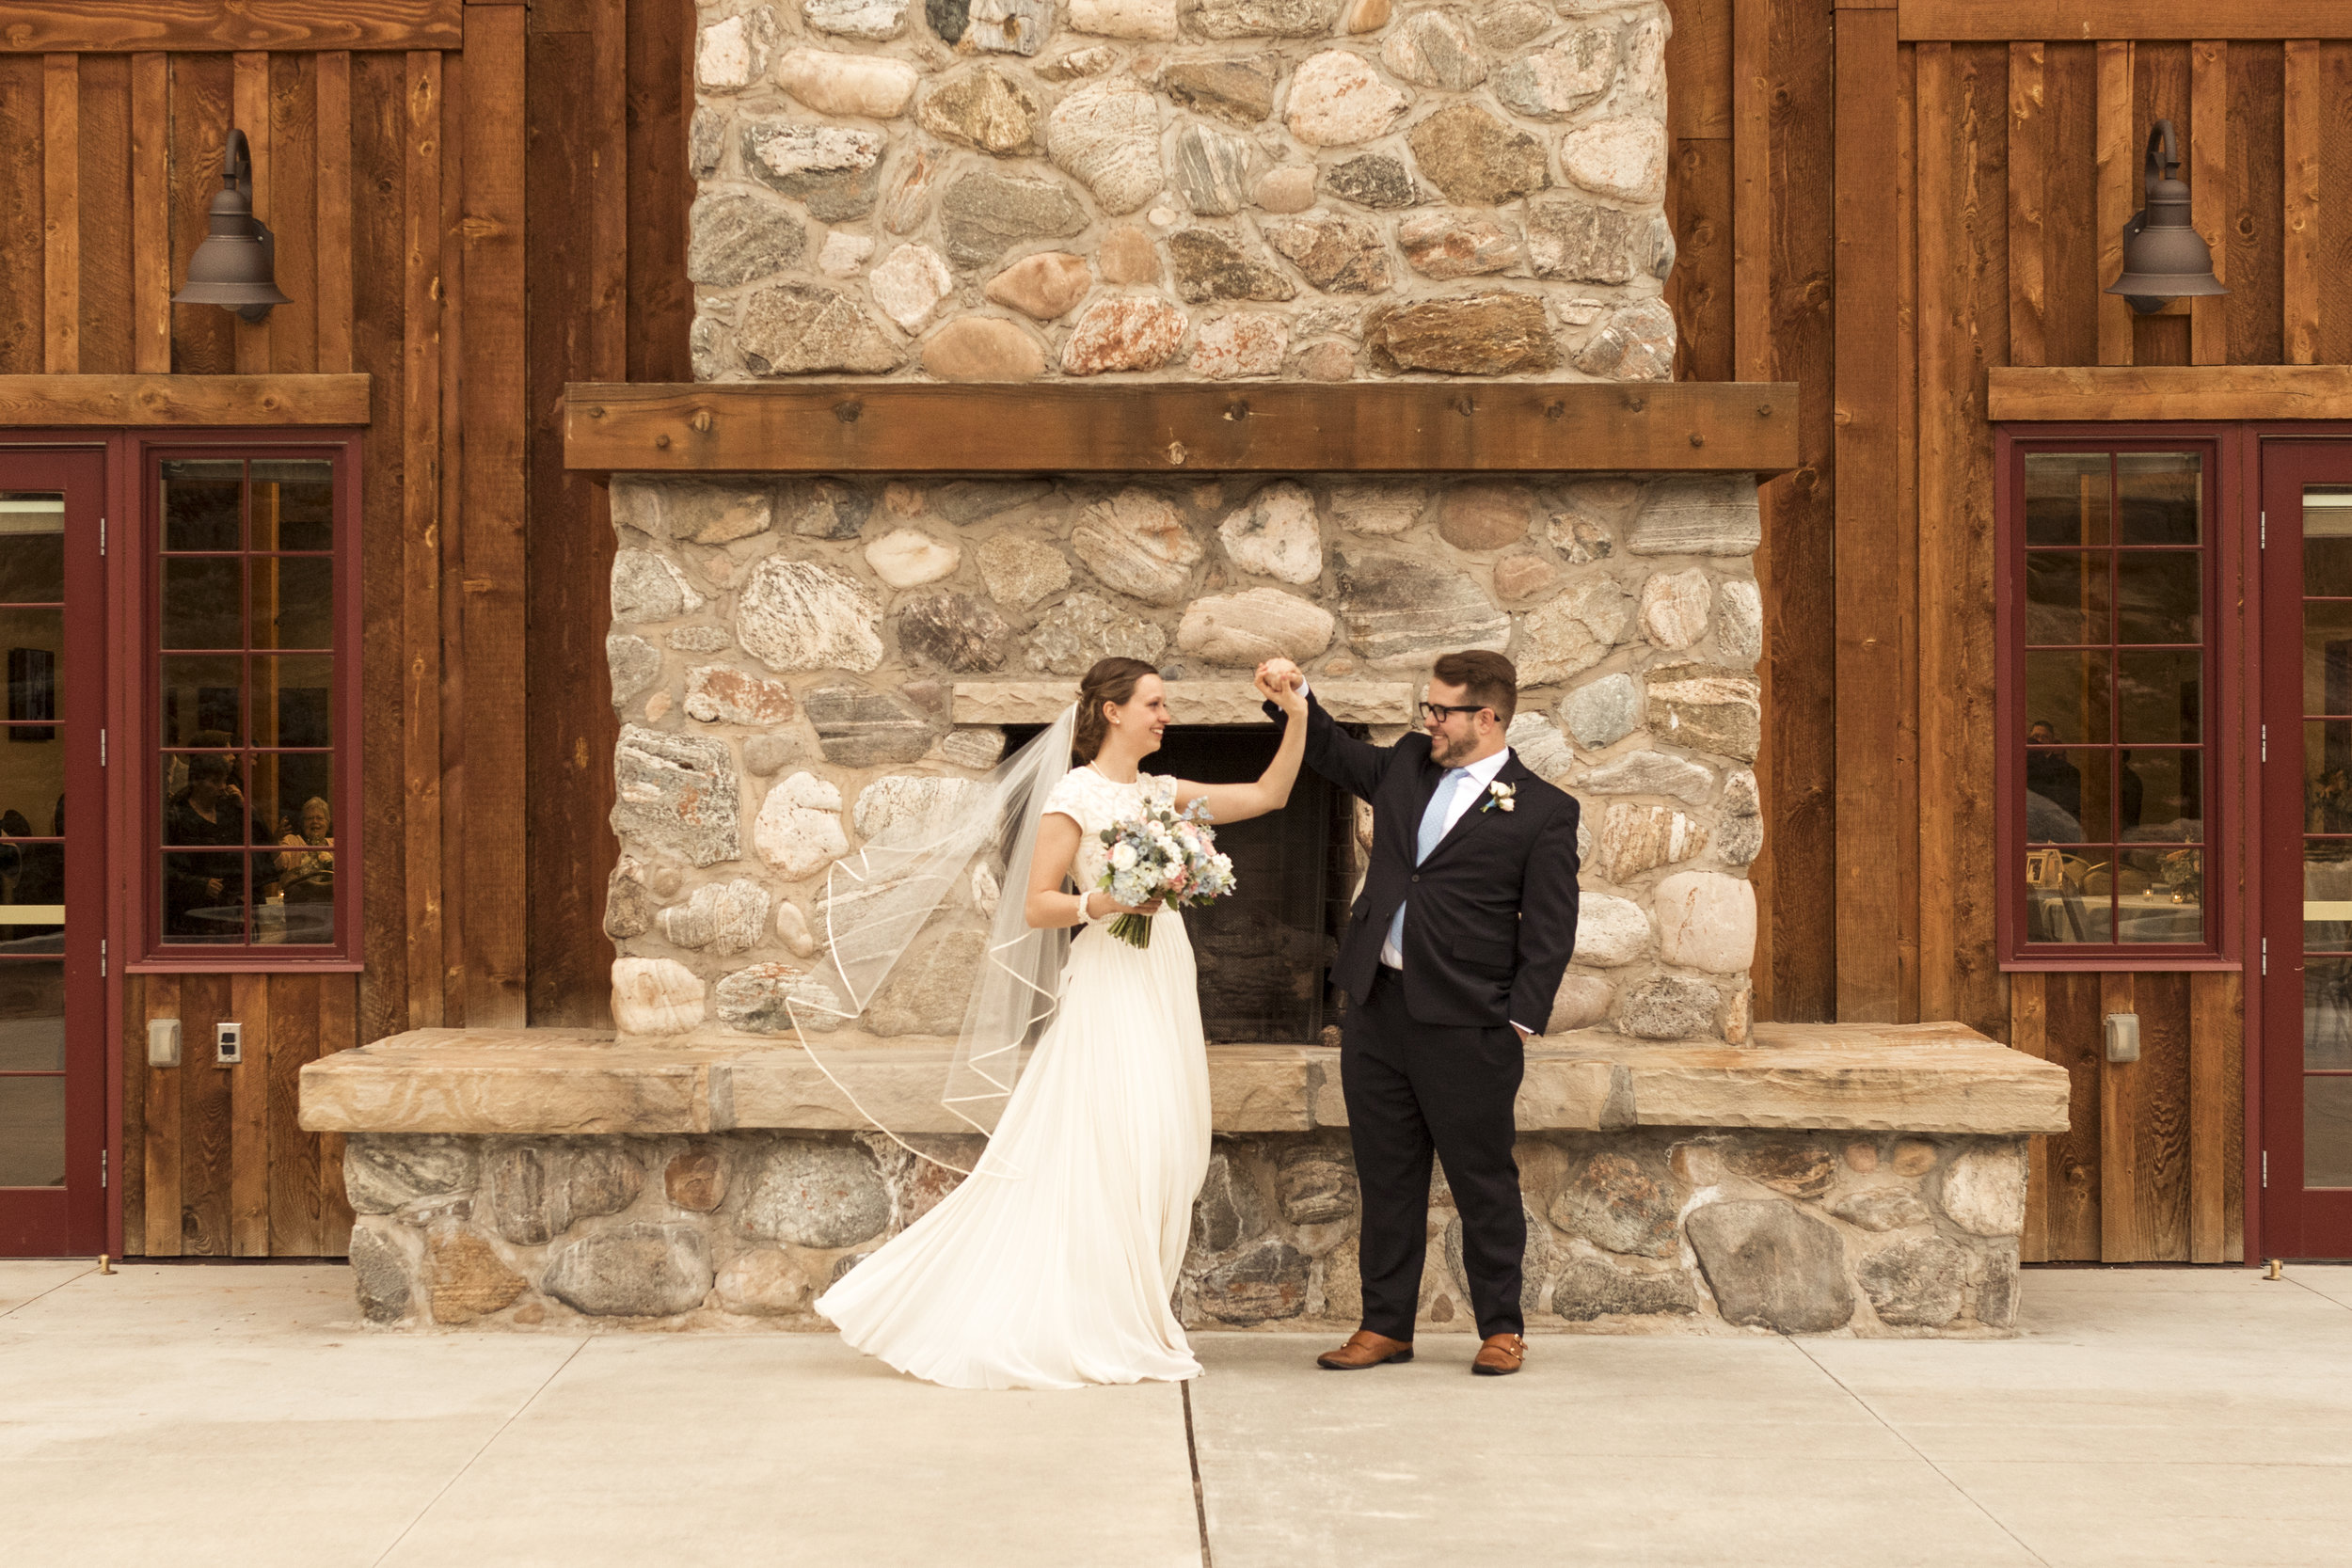 Utah Spring Wedding in a rustic barn by Bri Bergman Photography05.JPG